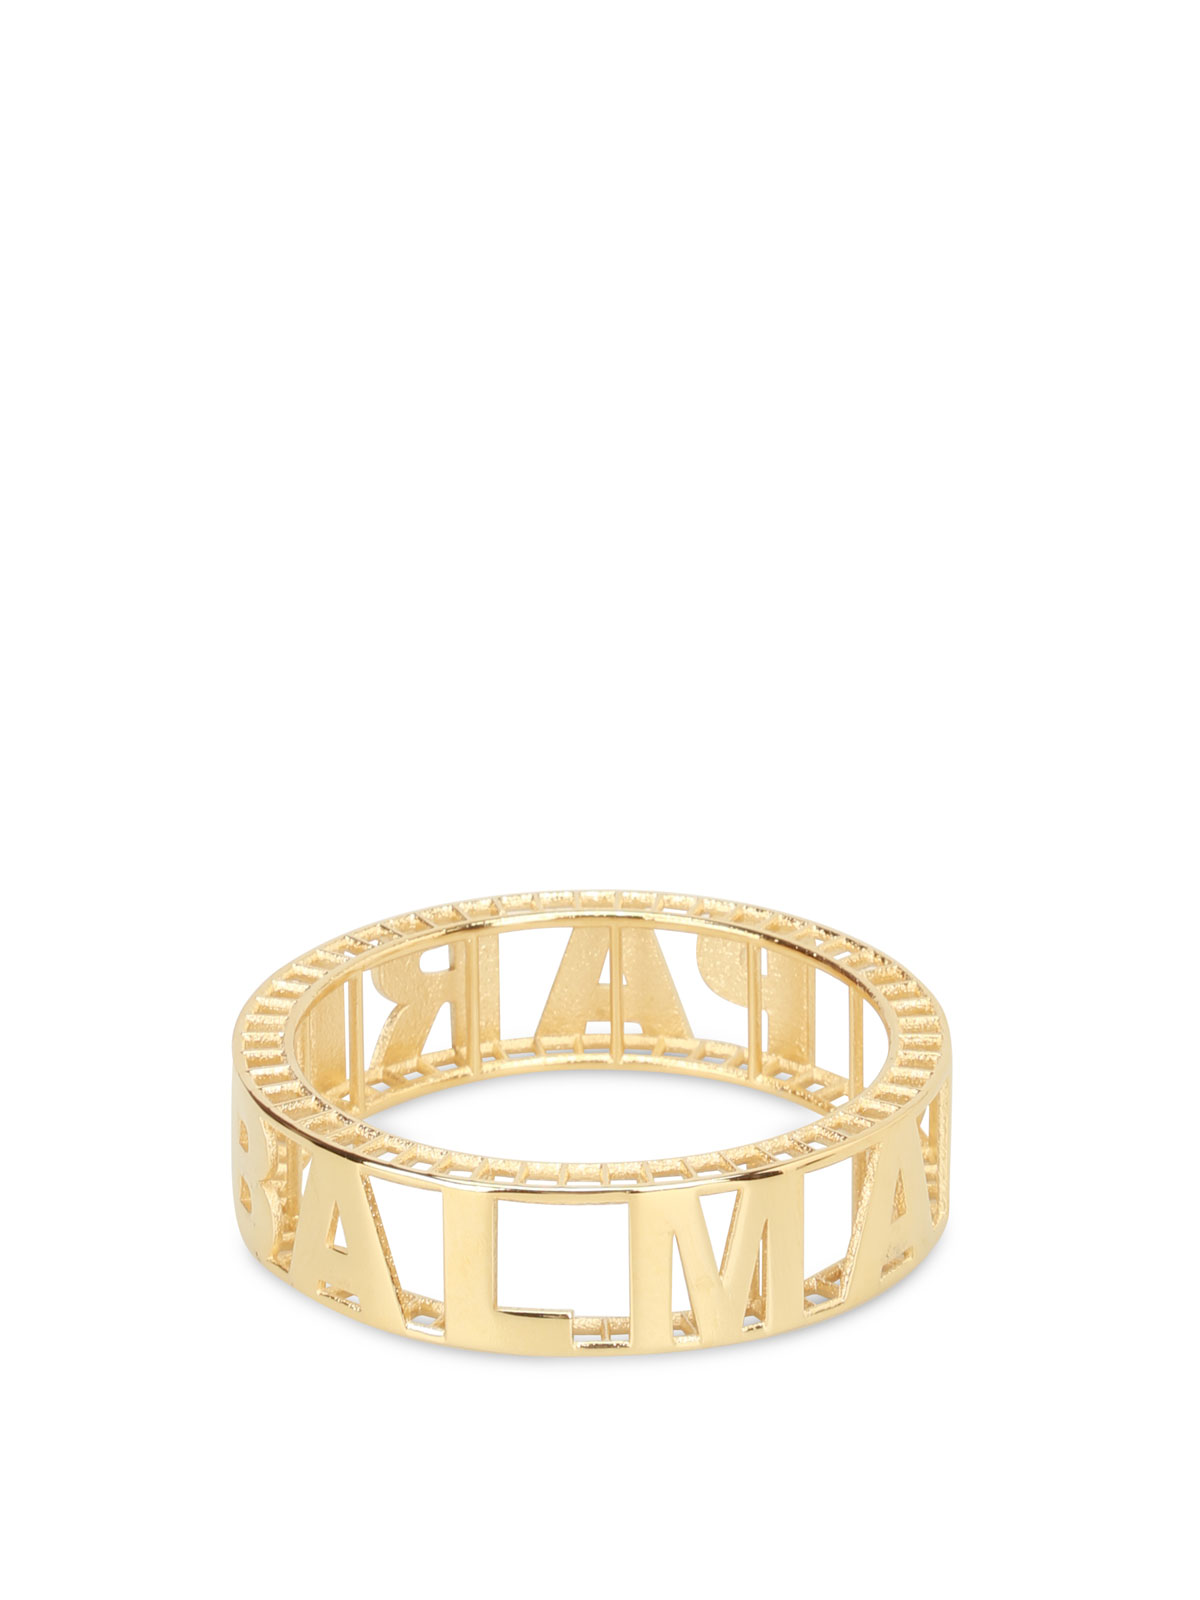 Balmain GOLD-TONE BRASS LOGO BANGLE